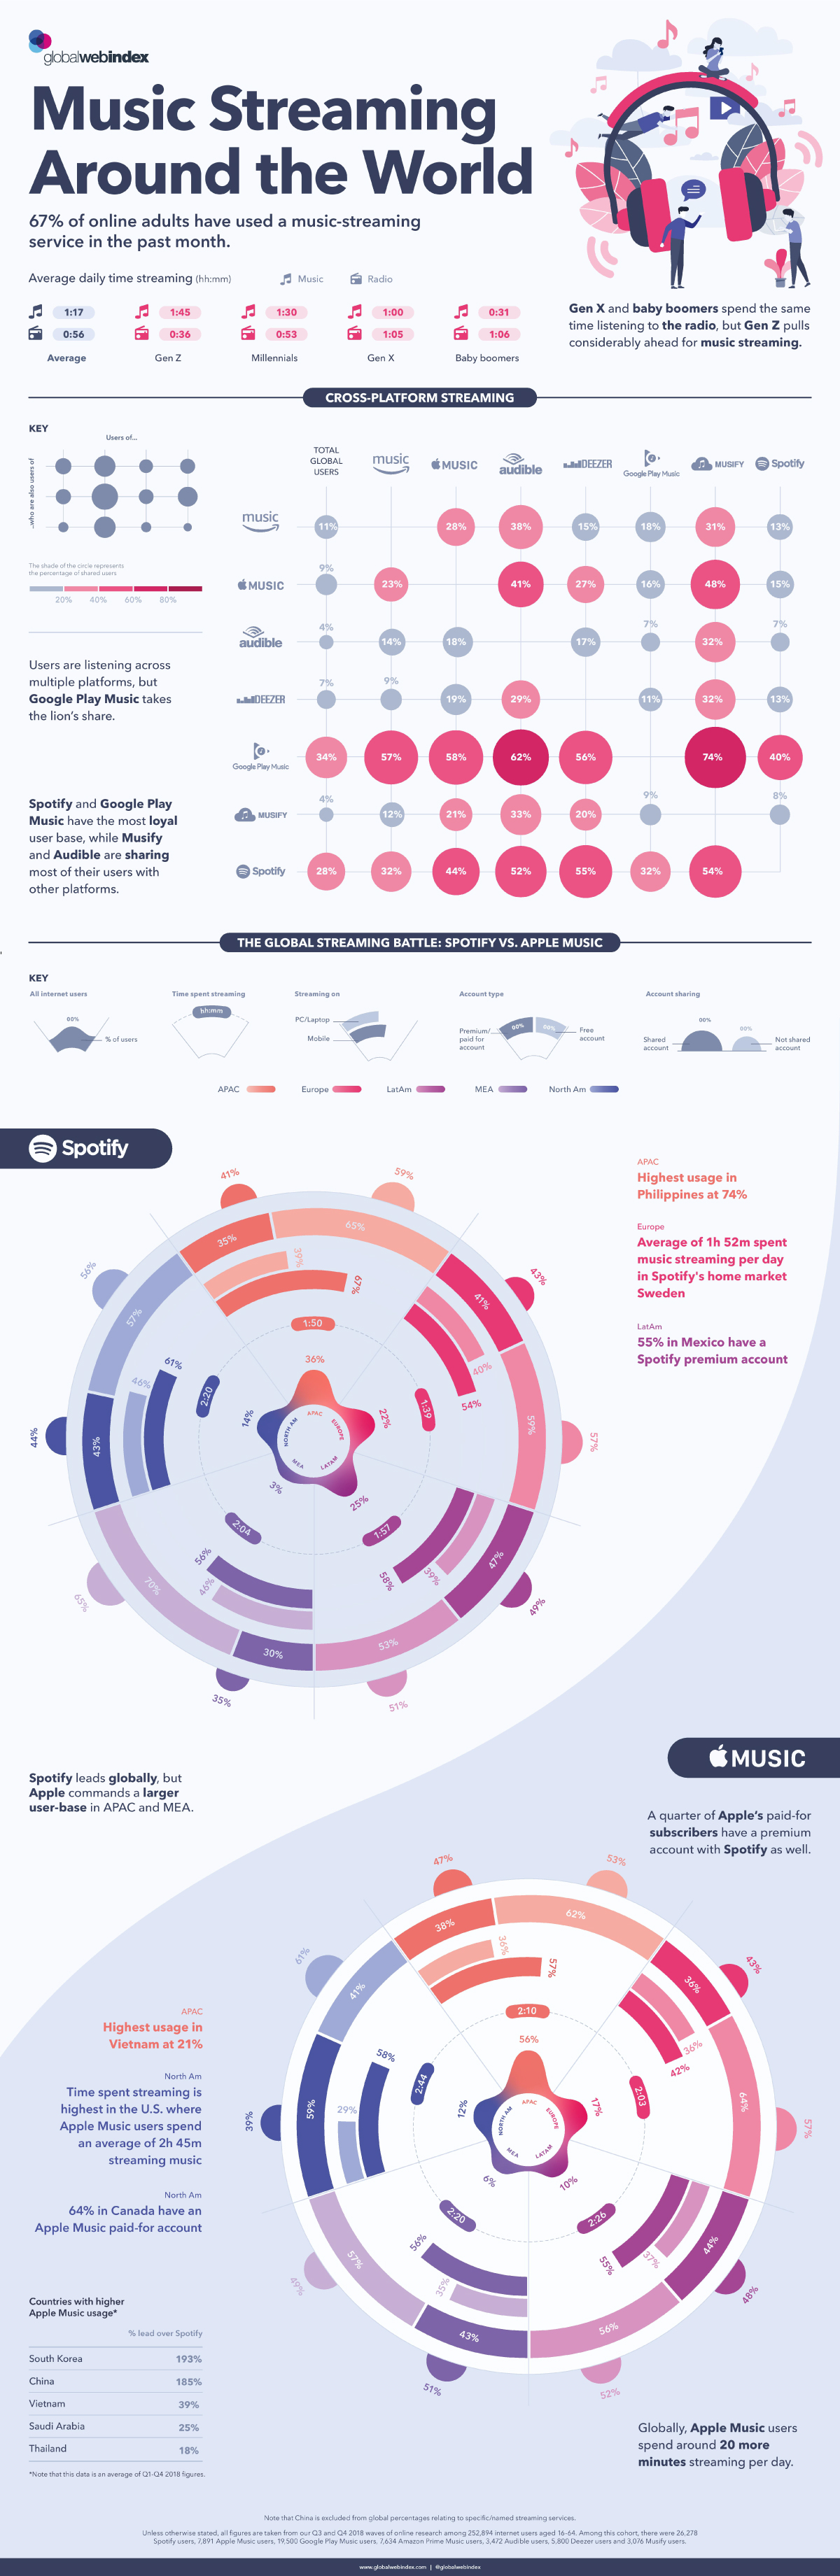 Music Streaming Infographic